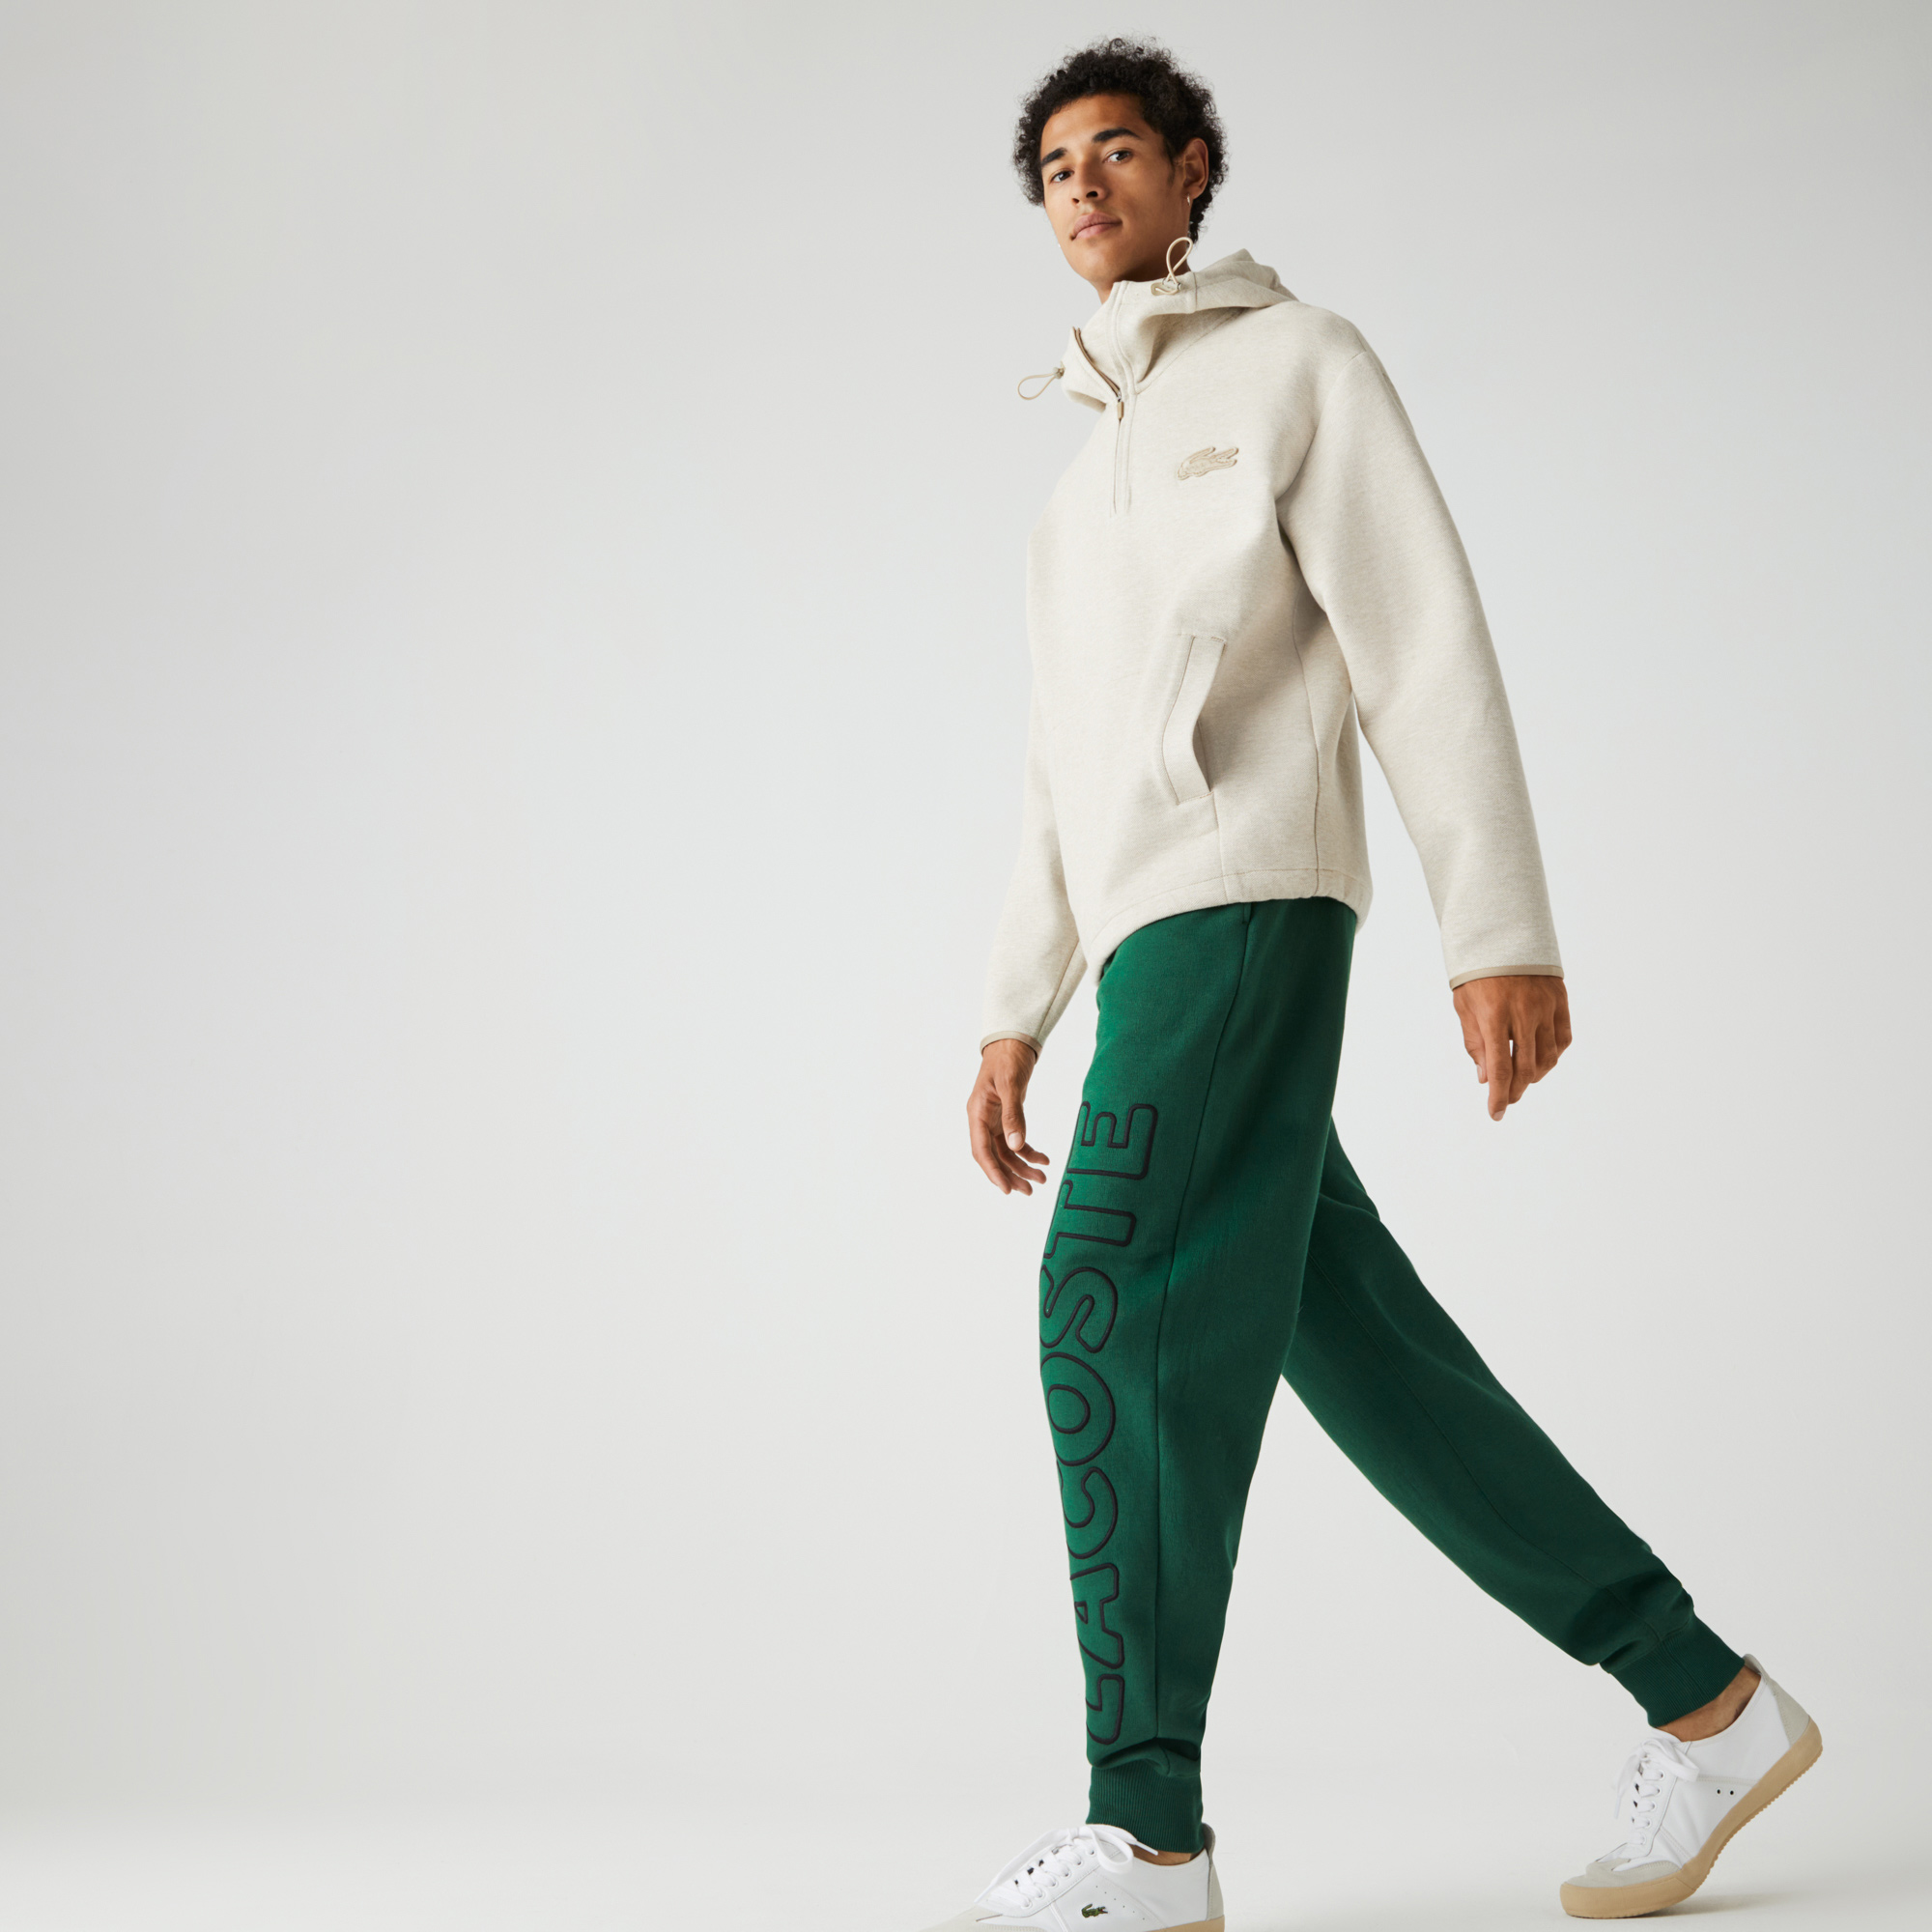 Lacoste Unisex LIVE Embroidered Cotton Blend Tracksuit Pants